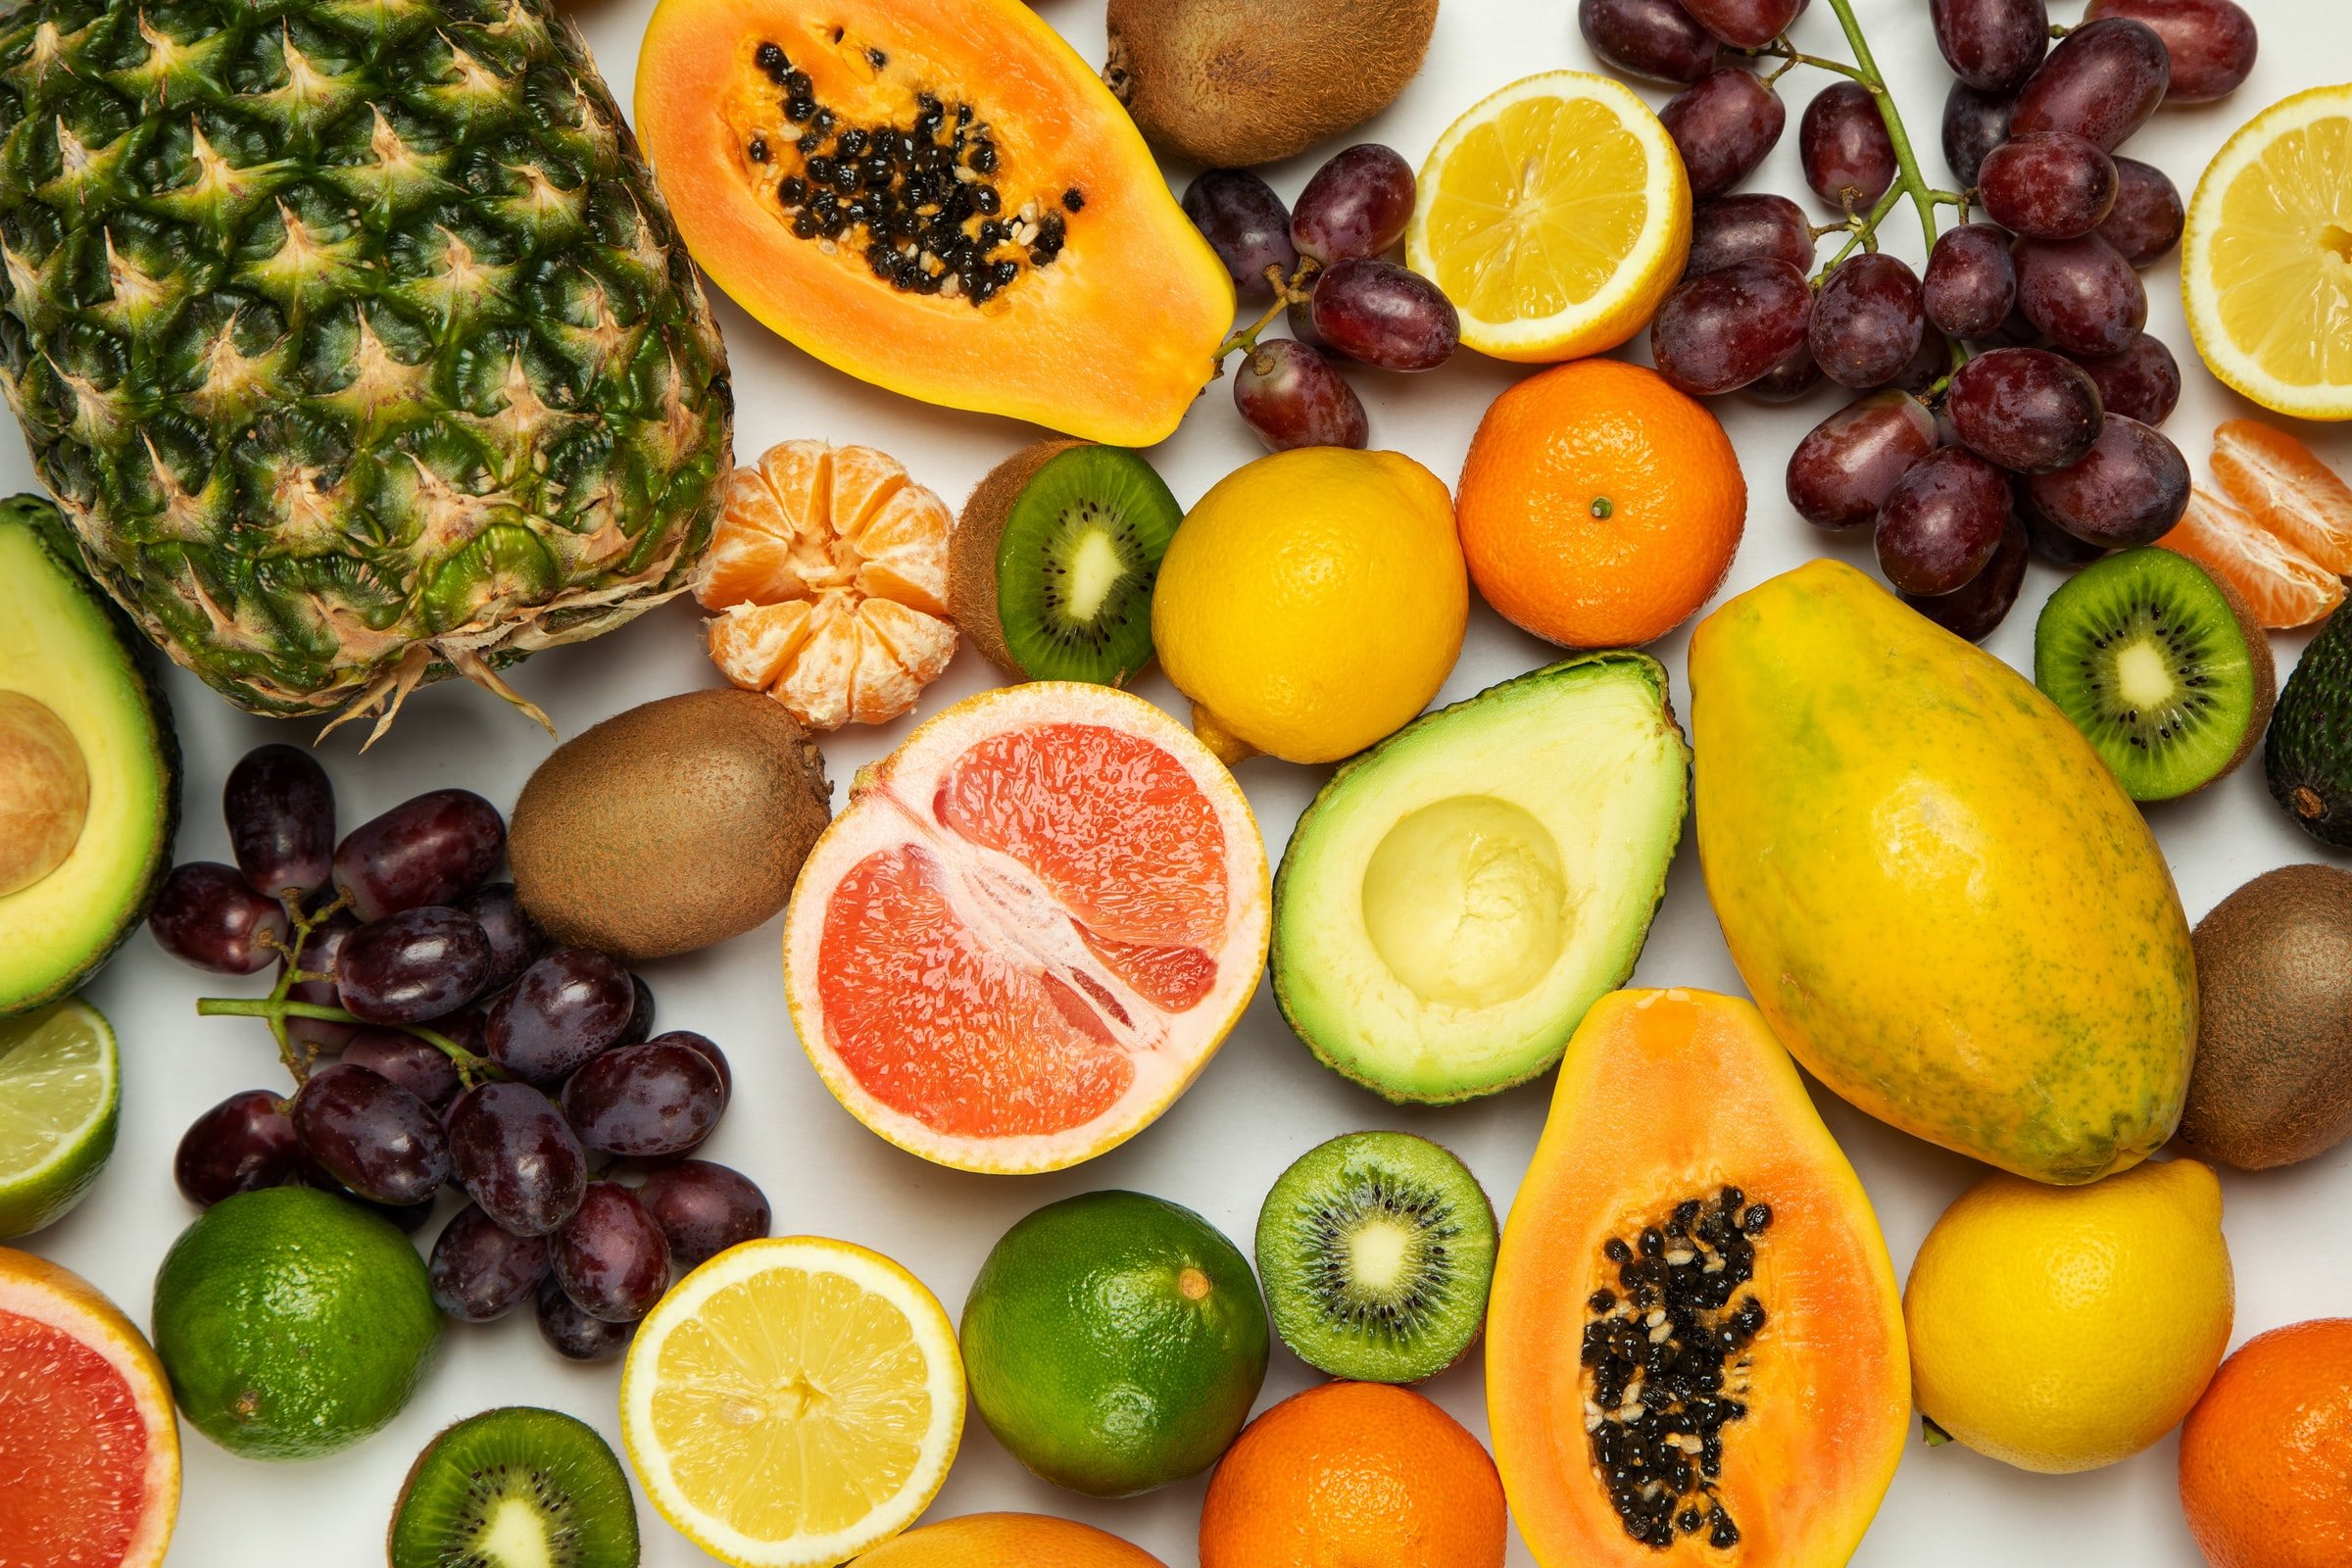 How to Pack Fruits For Lunch